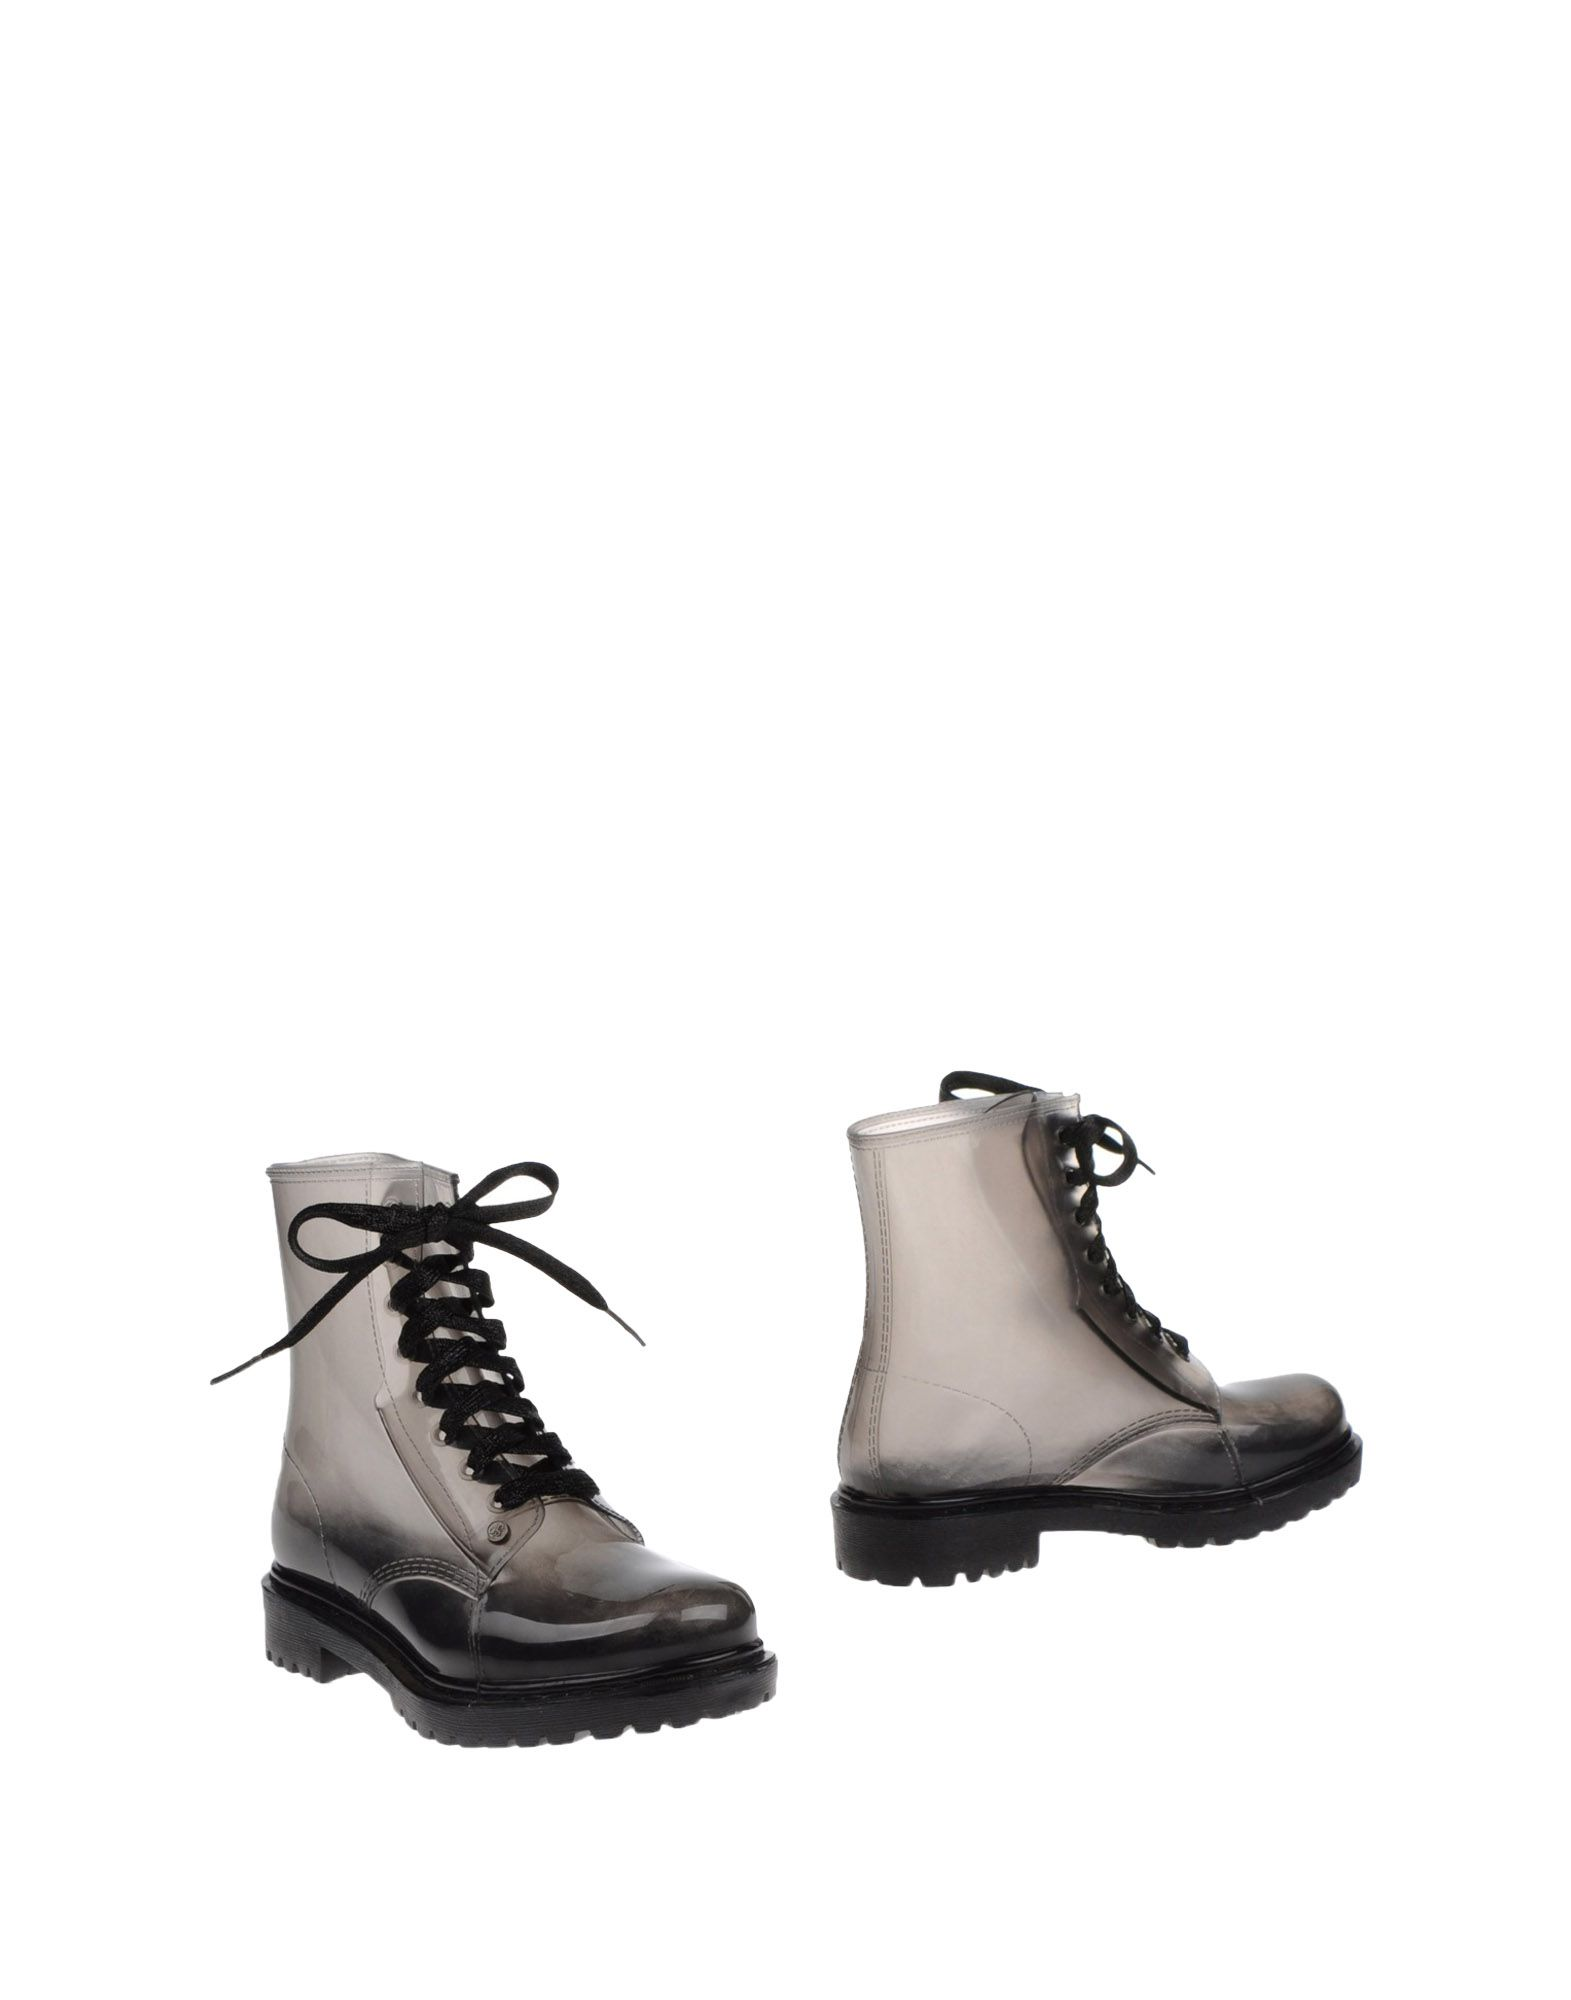 G SIX WORKSHOP Ankle Boots in Lead